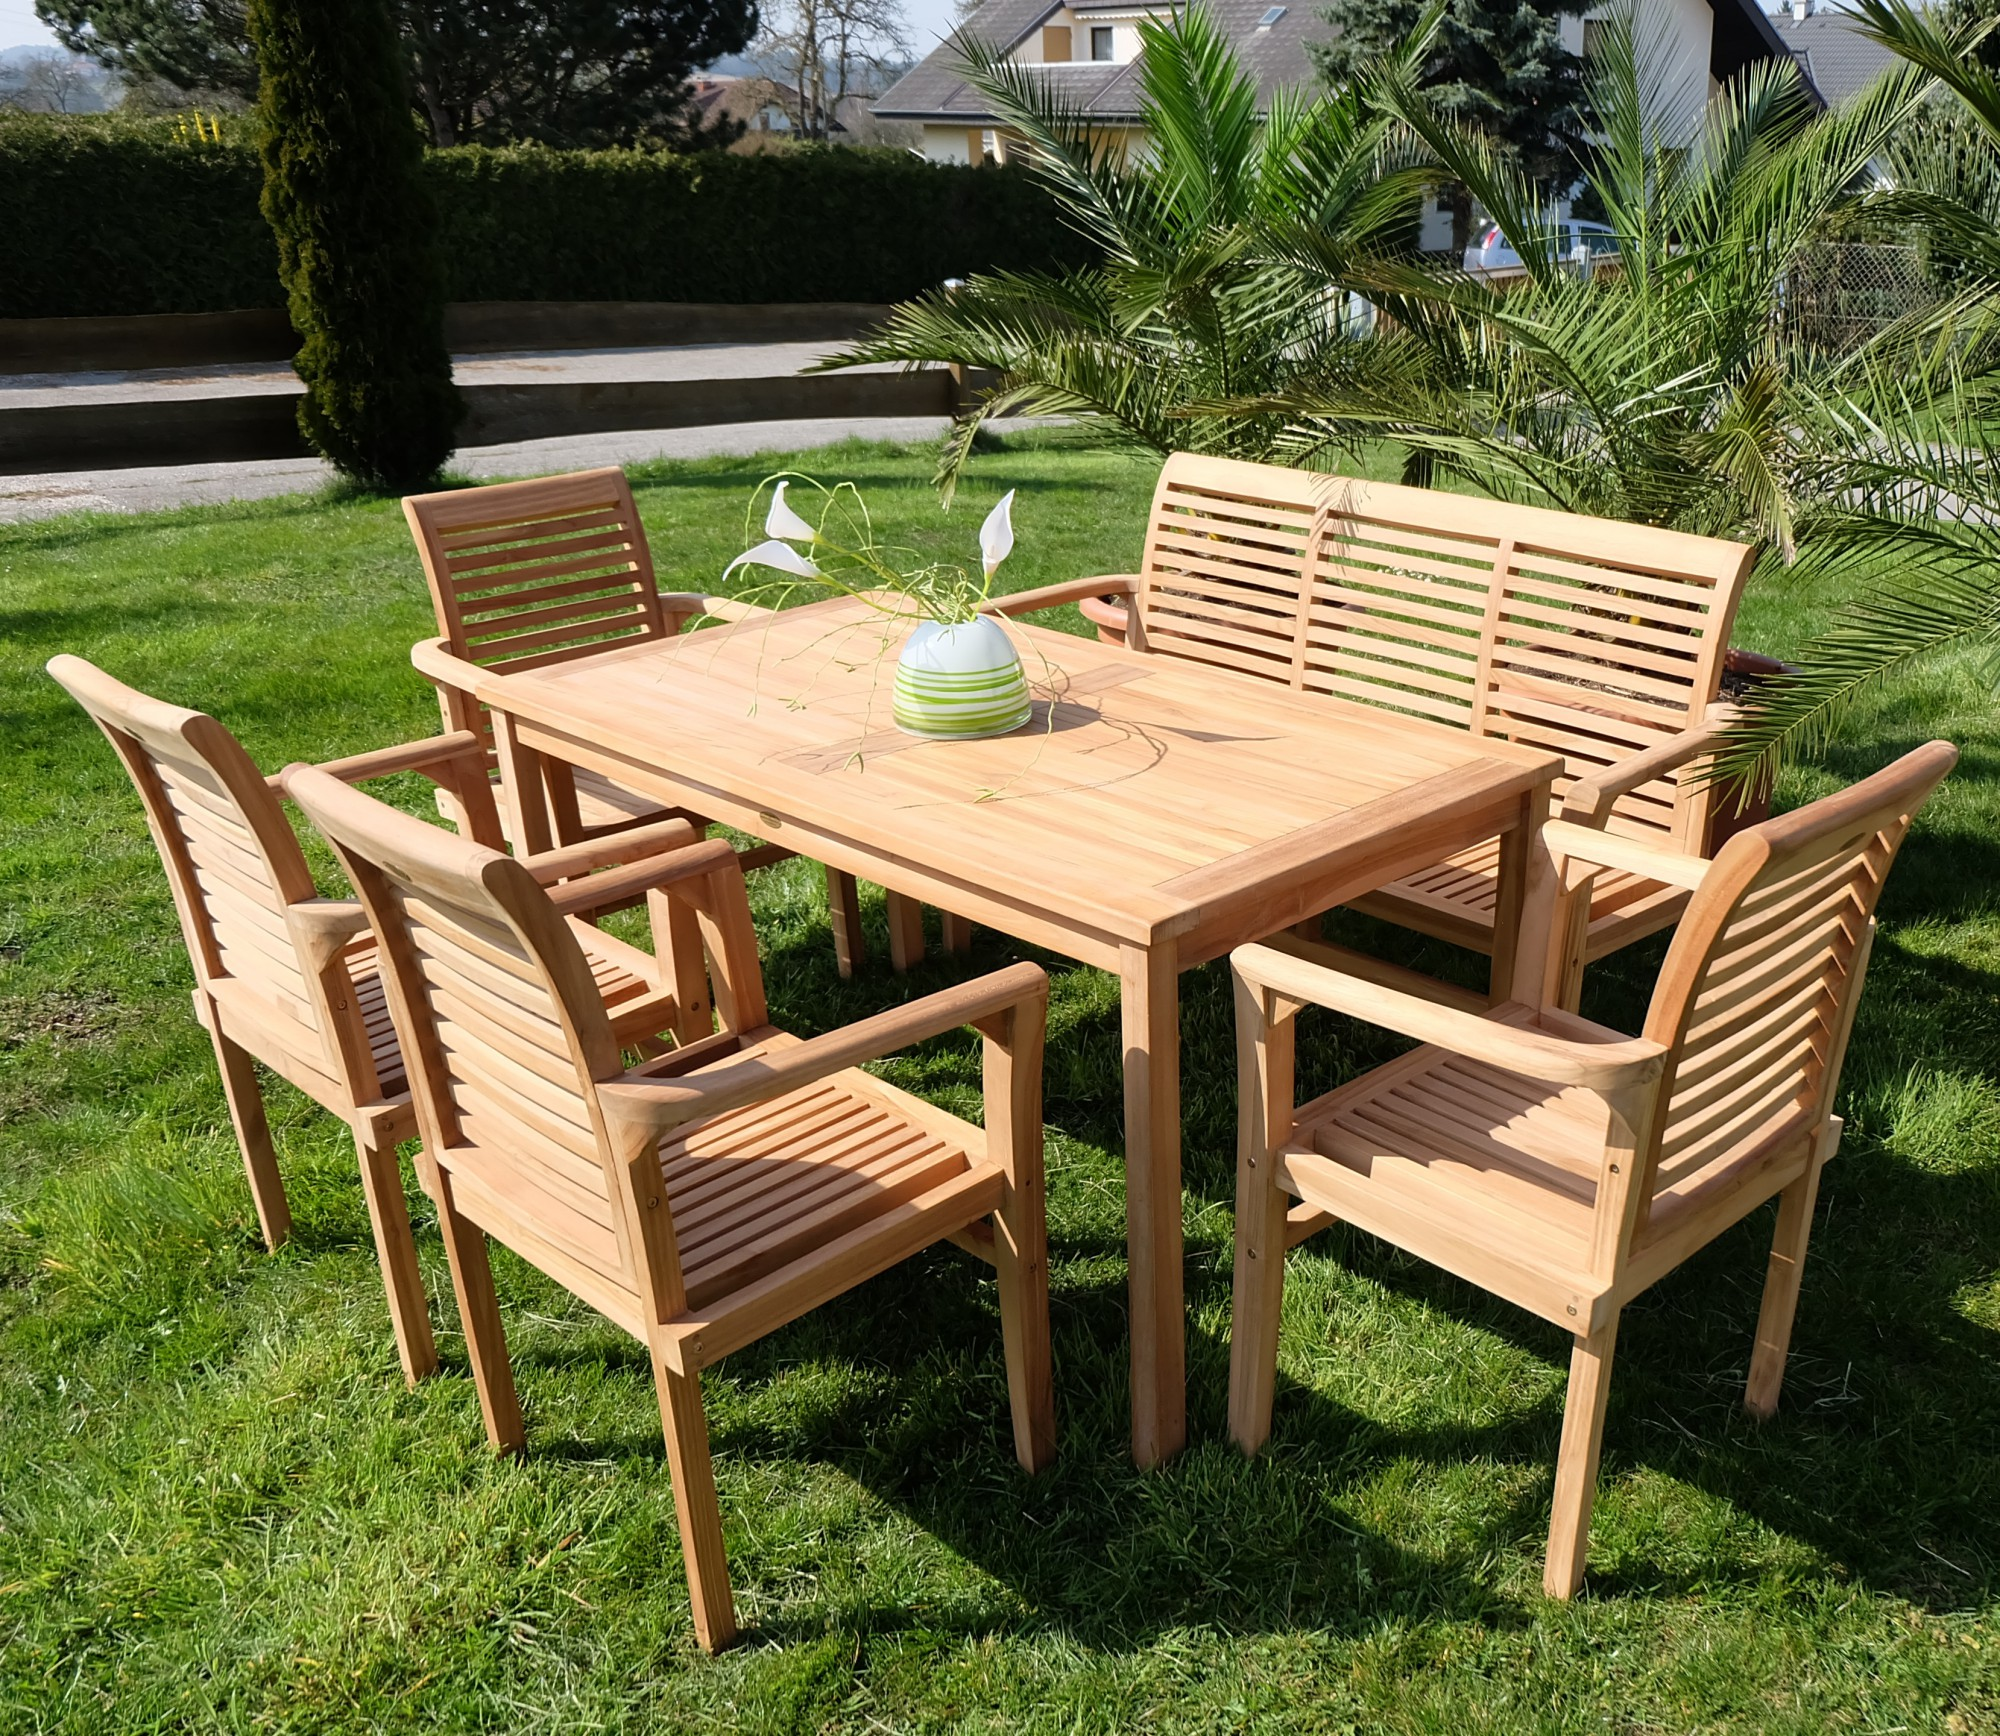 echt teak gartengarnitur gartenset gartenm bel tisch 1bank 4sessel alpen holz ebay. Black Bedroom Furniture Sets. Home Design Ideas